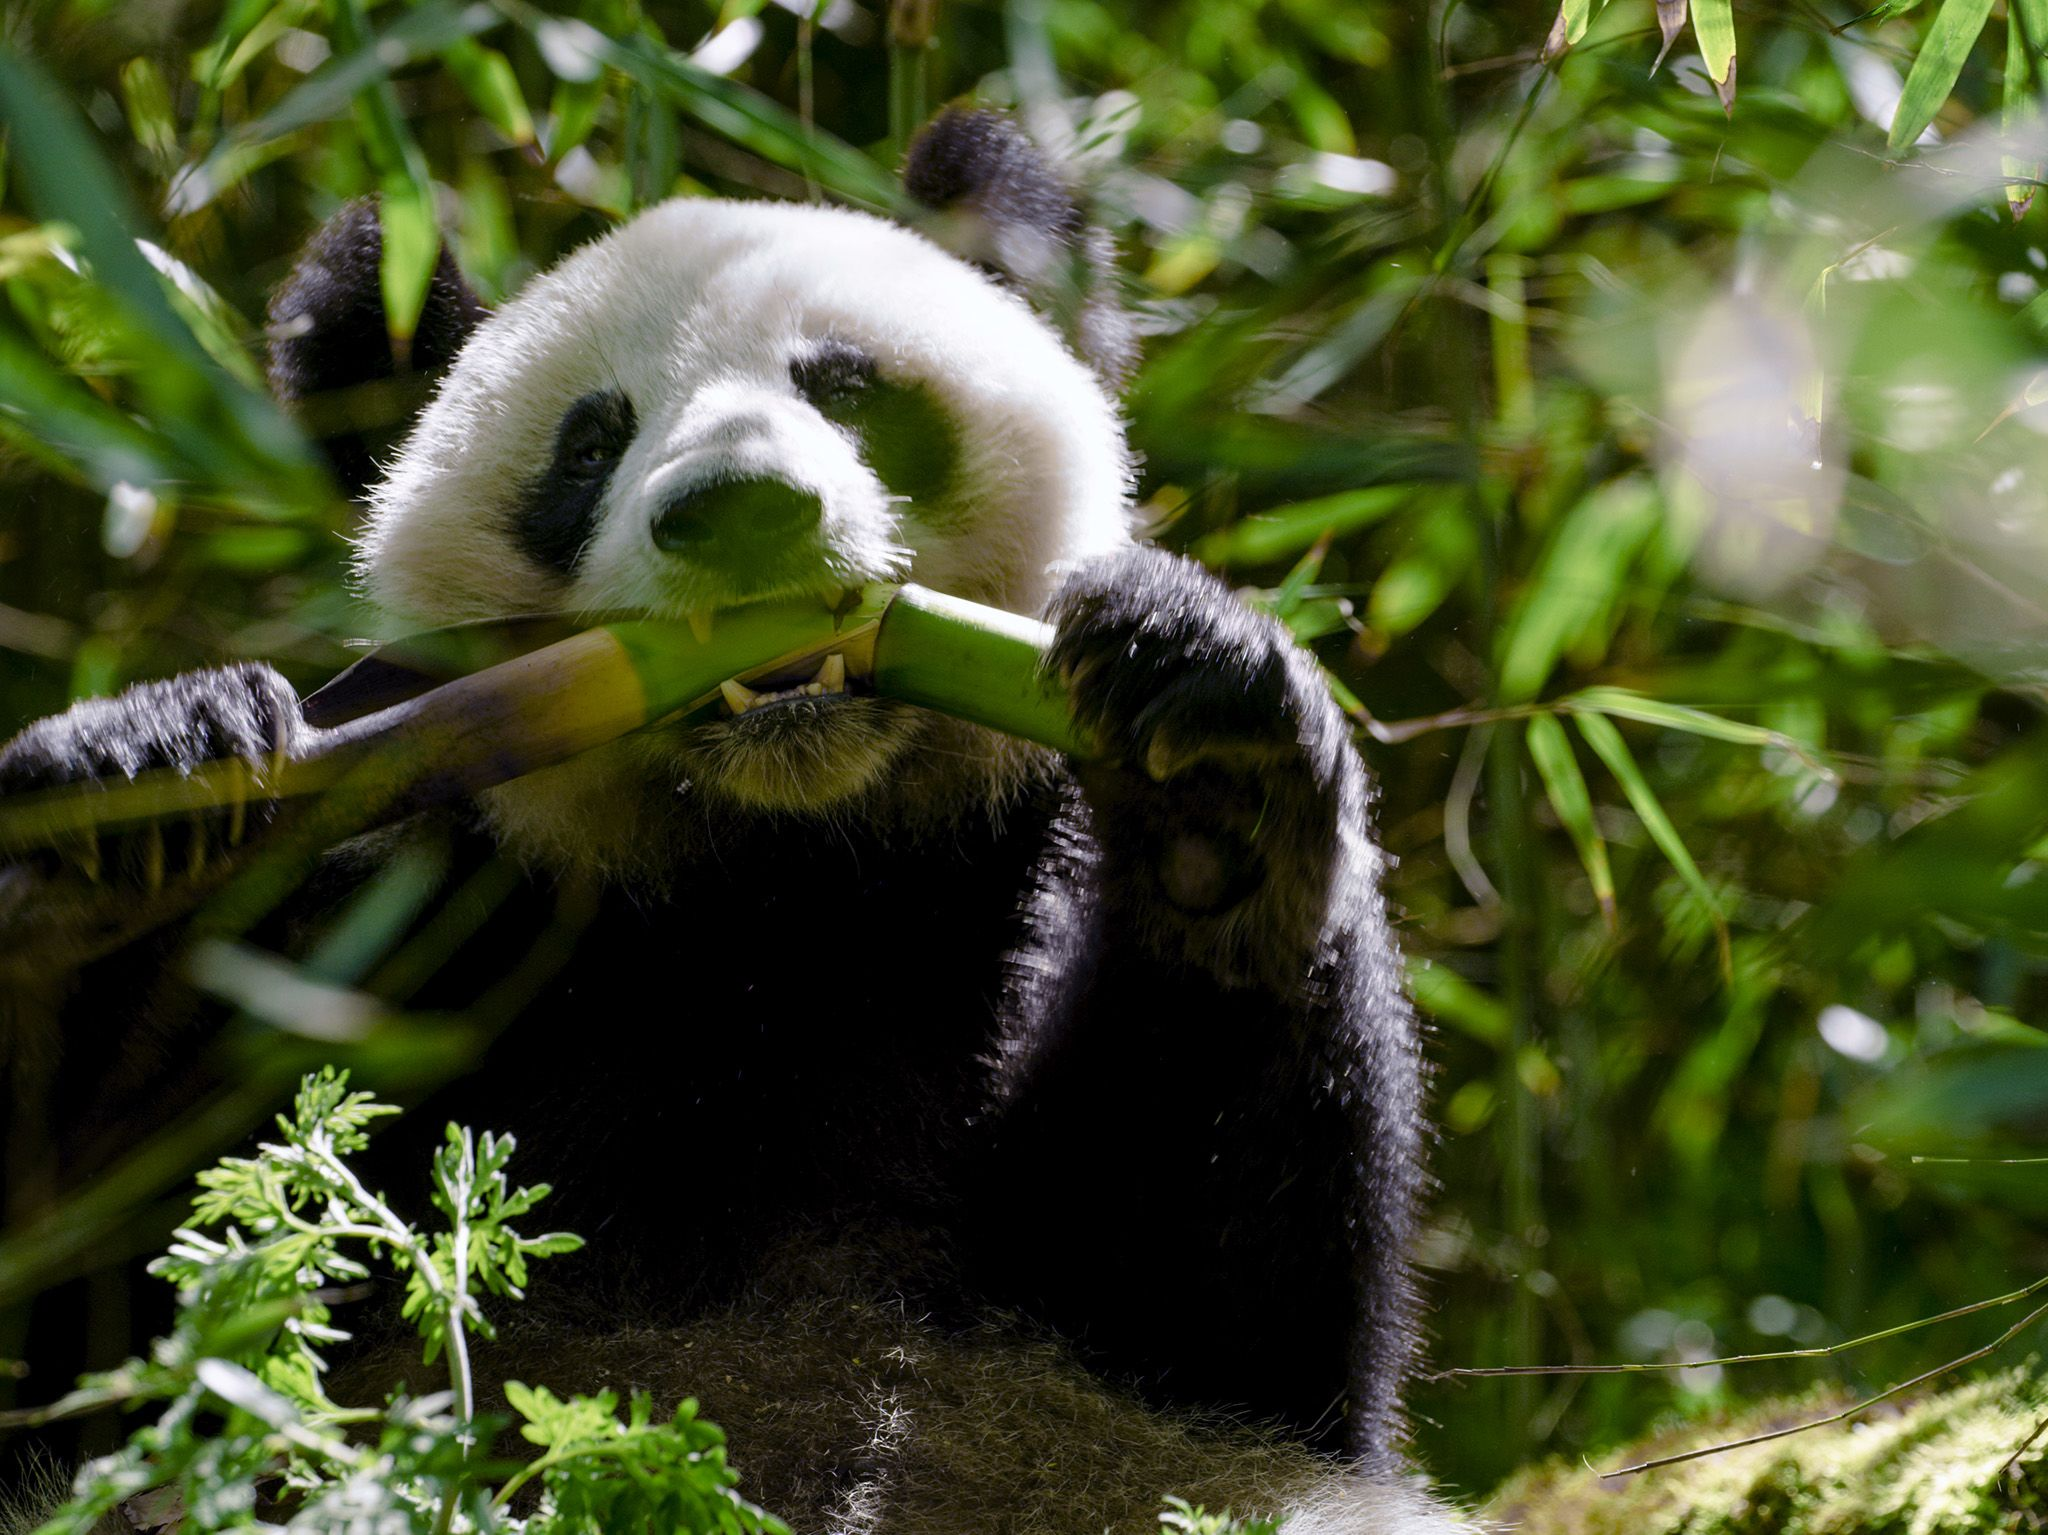 Wolong, Sichuan, China: Pandas playing in the bamboo forest. This image is from The Hidden... [Photo of the day - اکتوبر 2019]